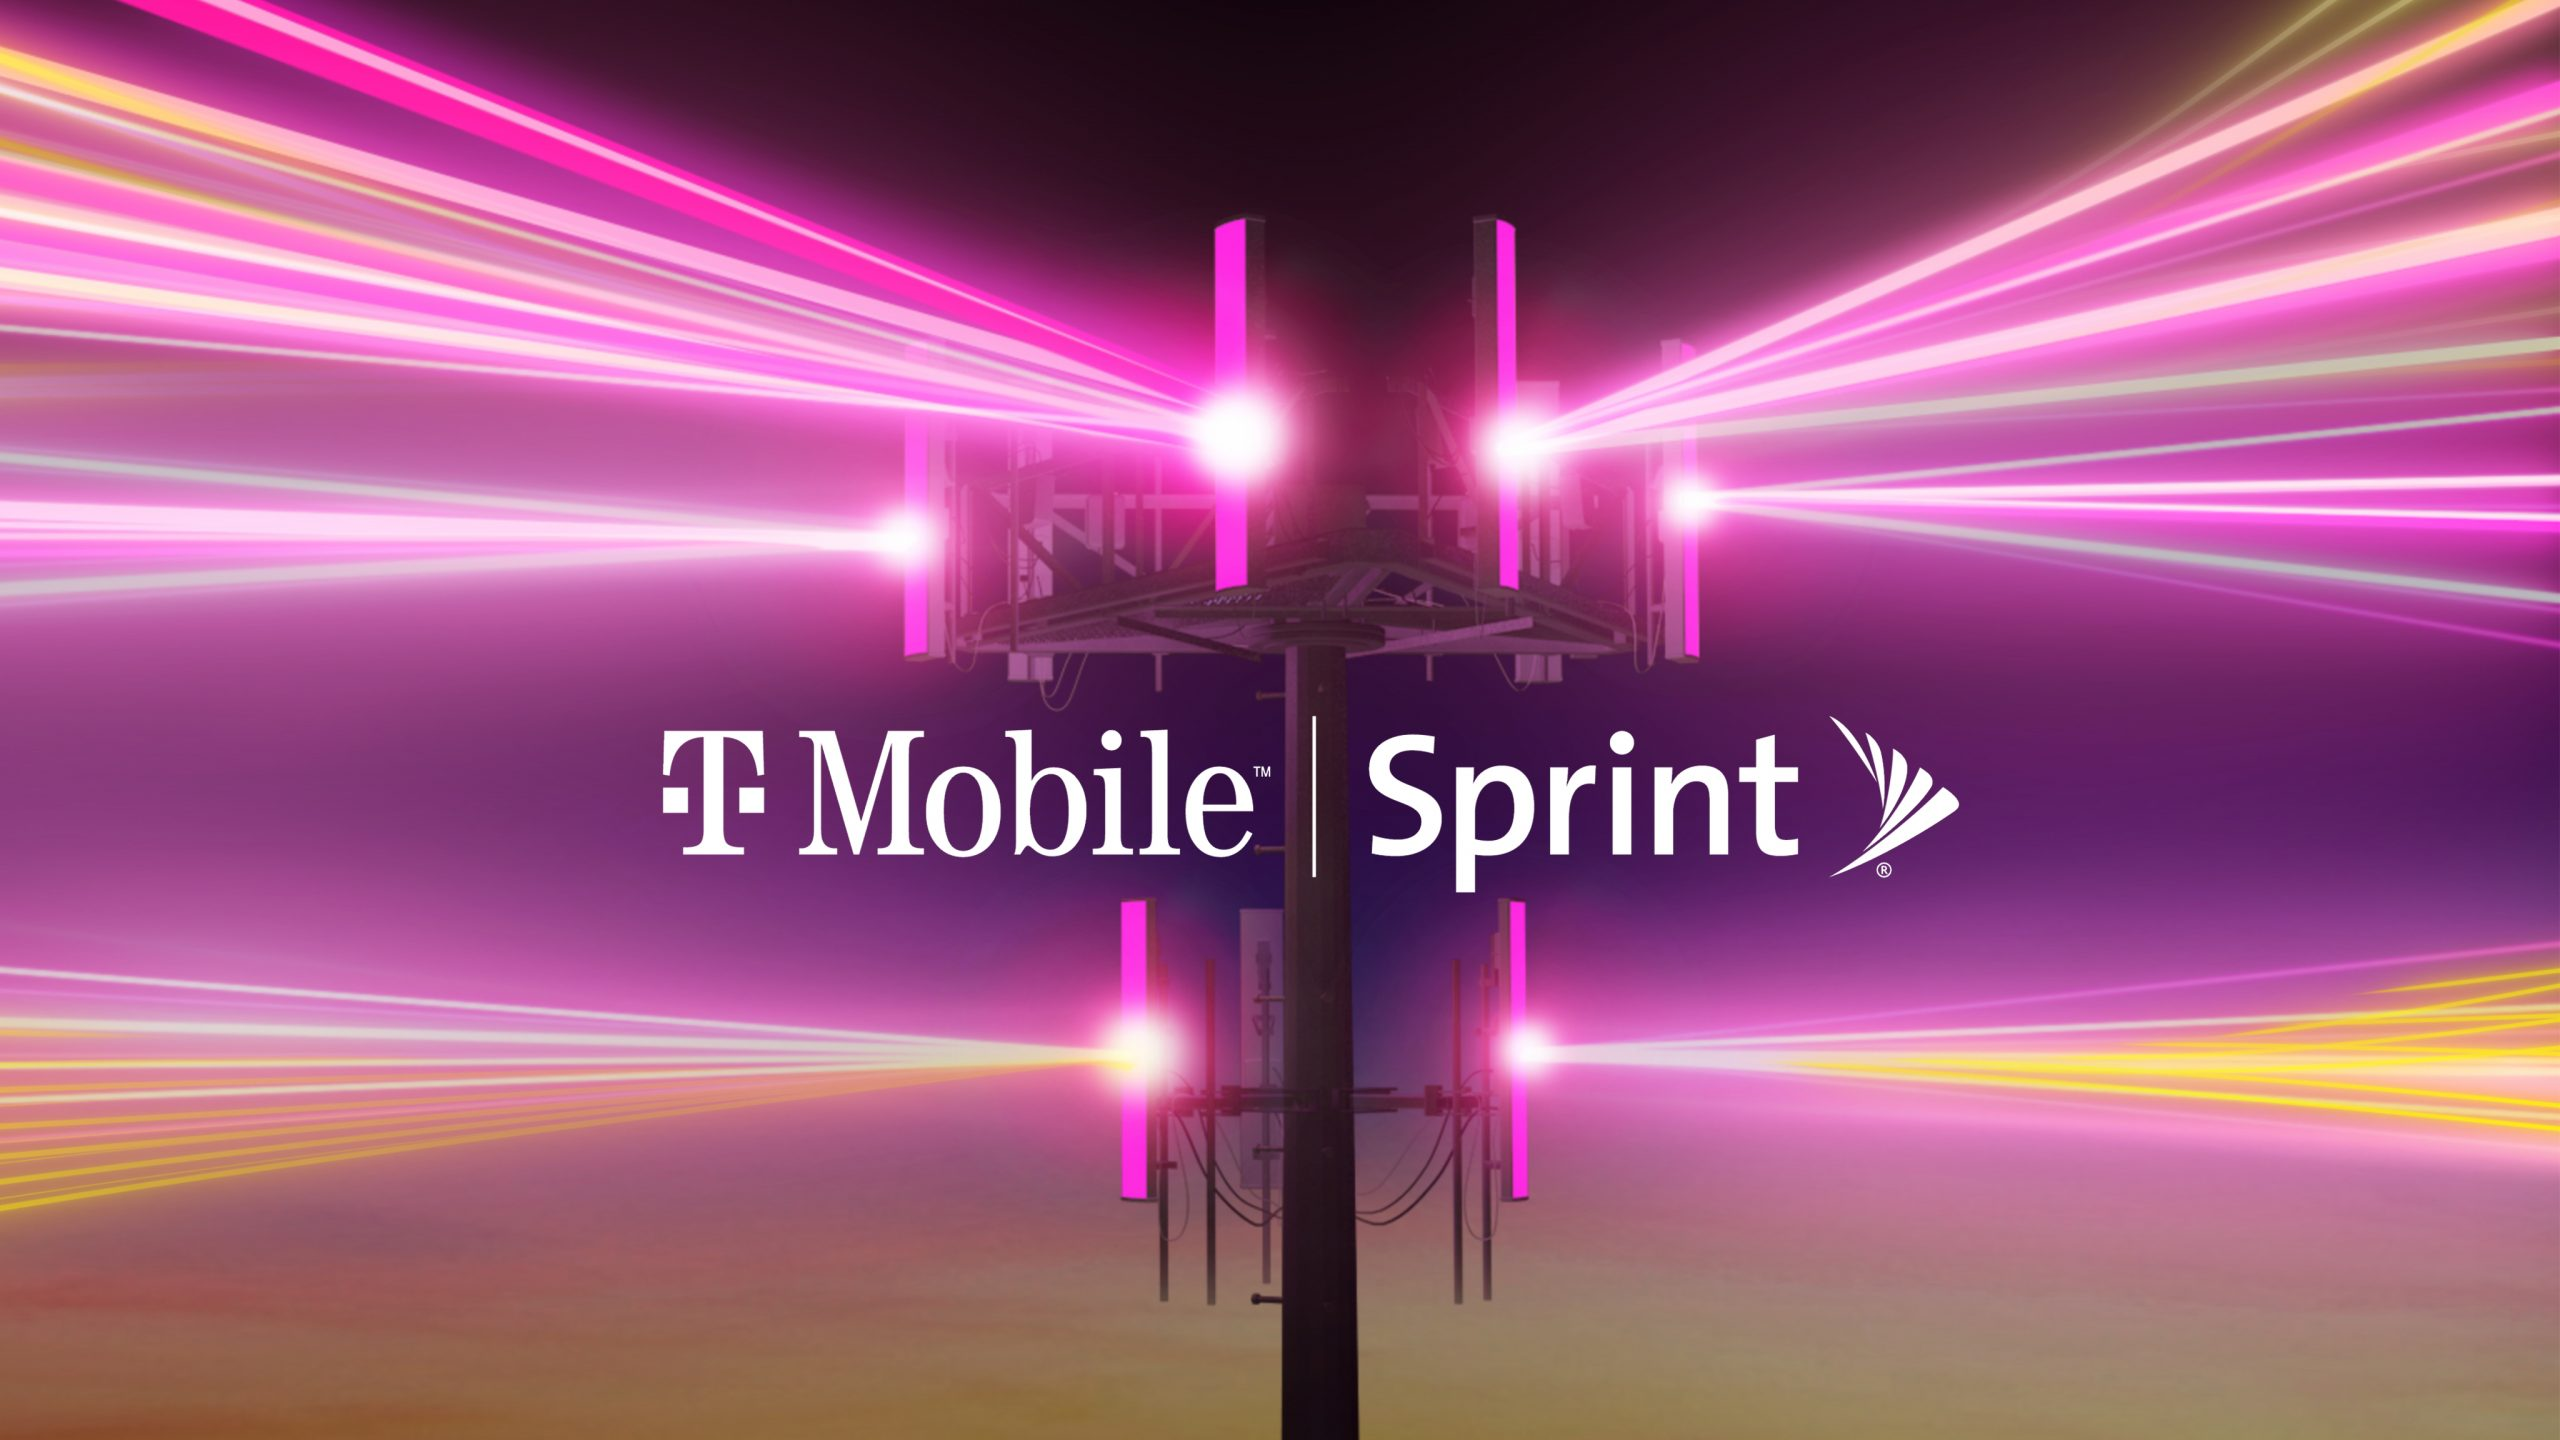 T-Mobile reportedly takes hatchet to Sprint, cutting entire sales division and other jobs